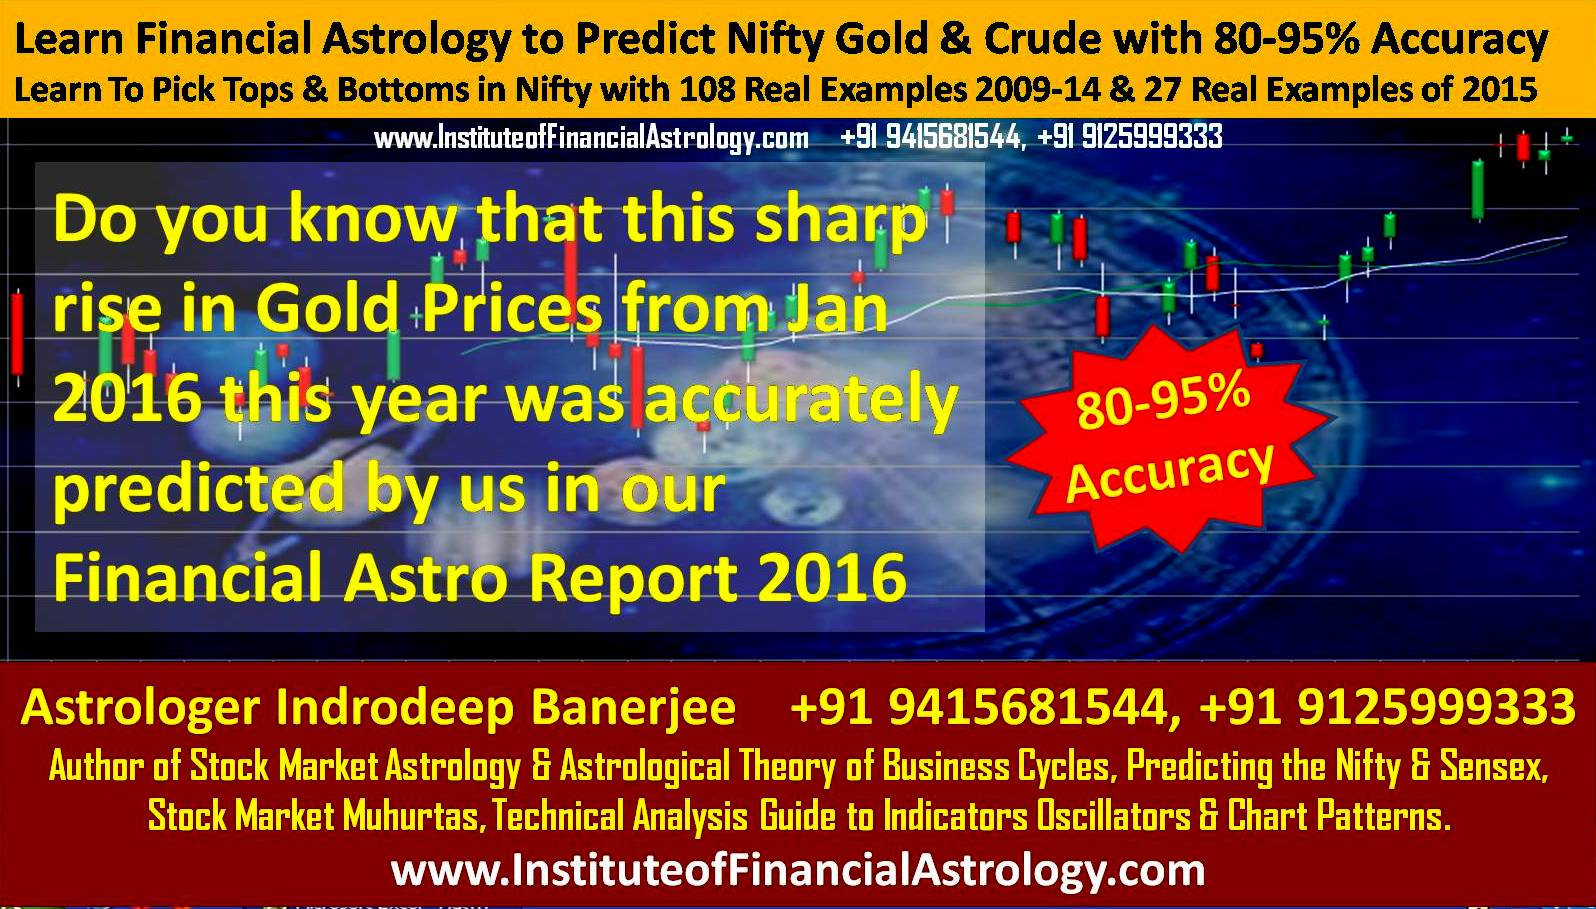 Birth Chart Analysis Institute Of Financial Astrology